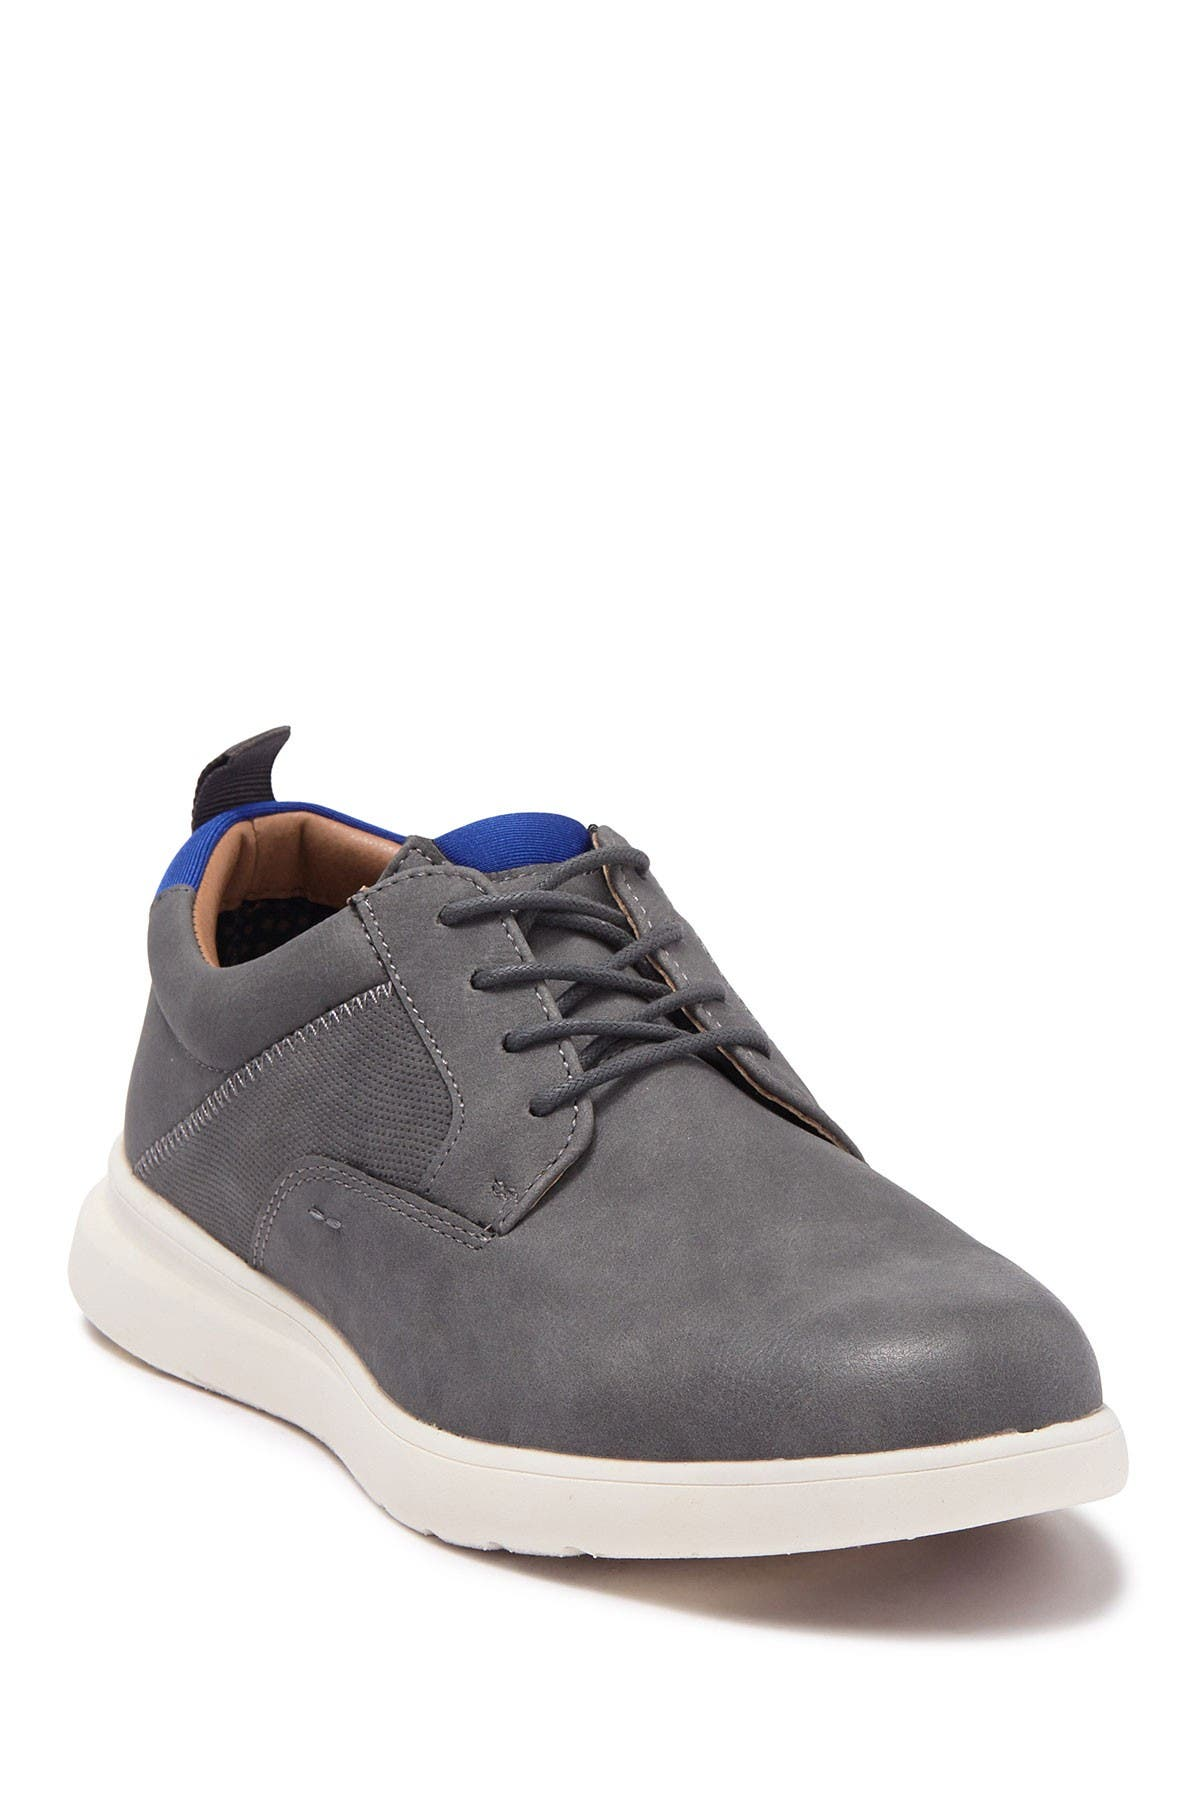 Image of Madden Mauro Leather Sneaker